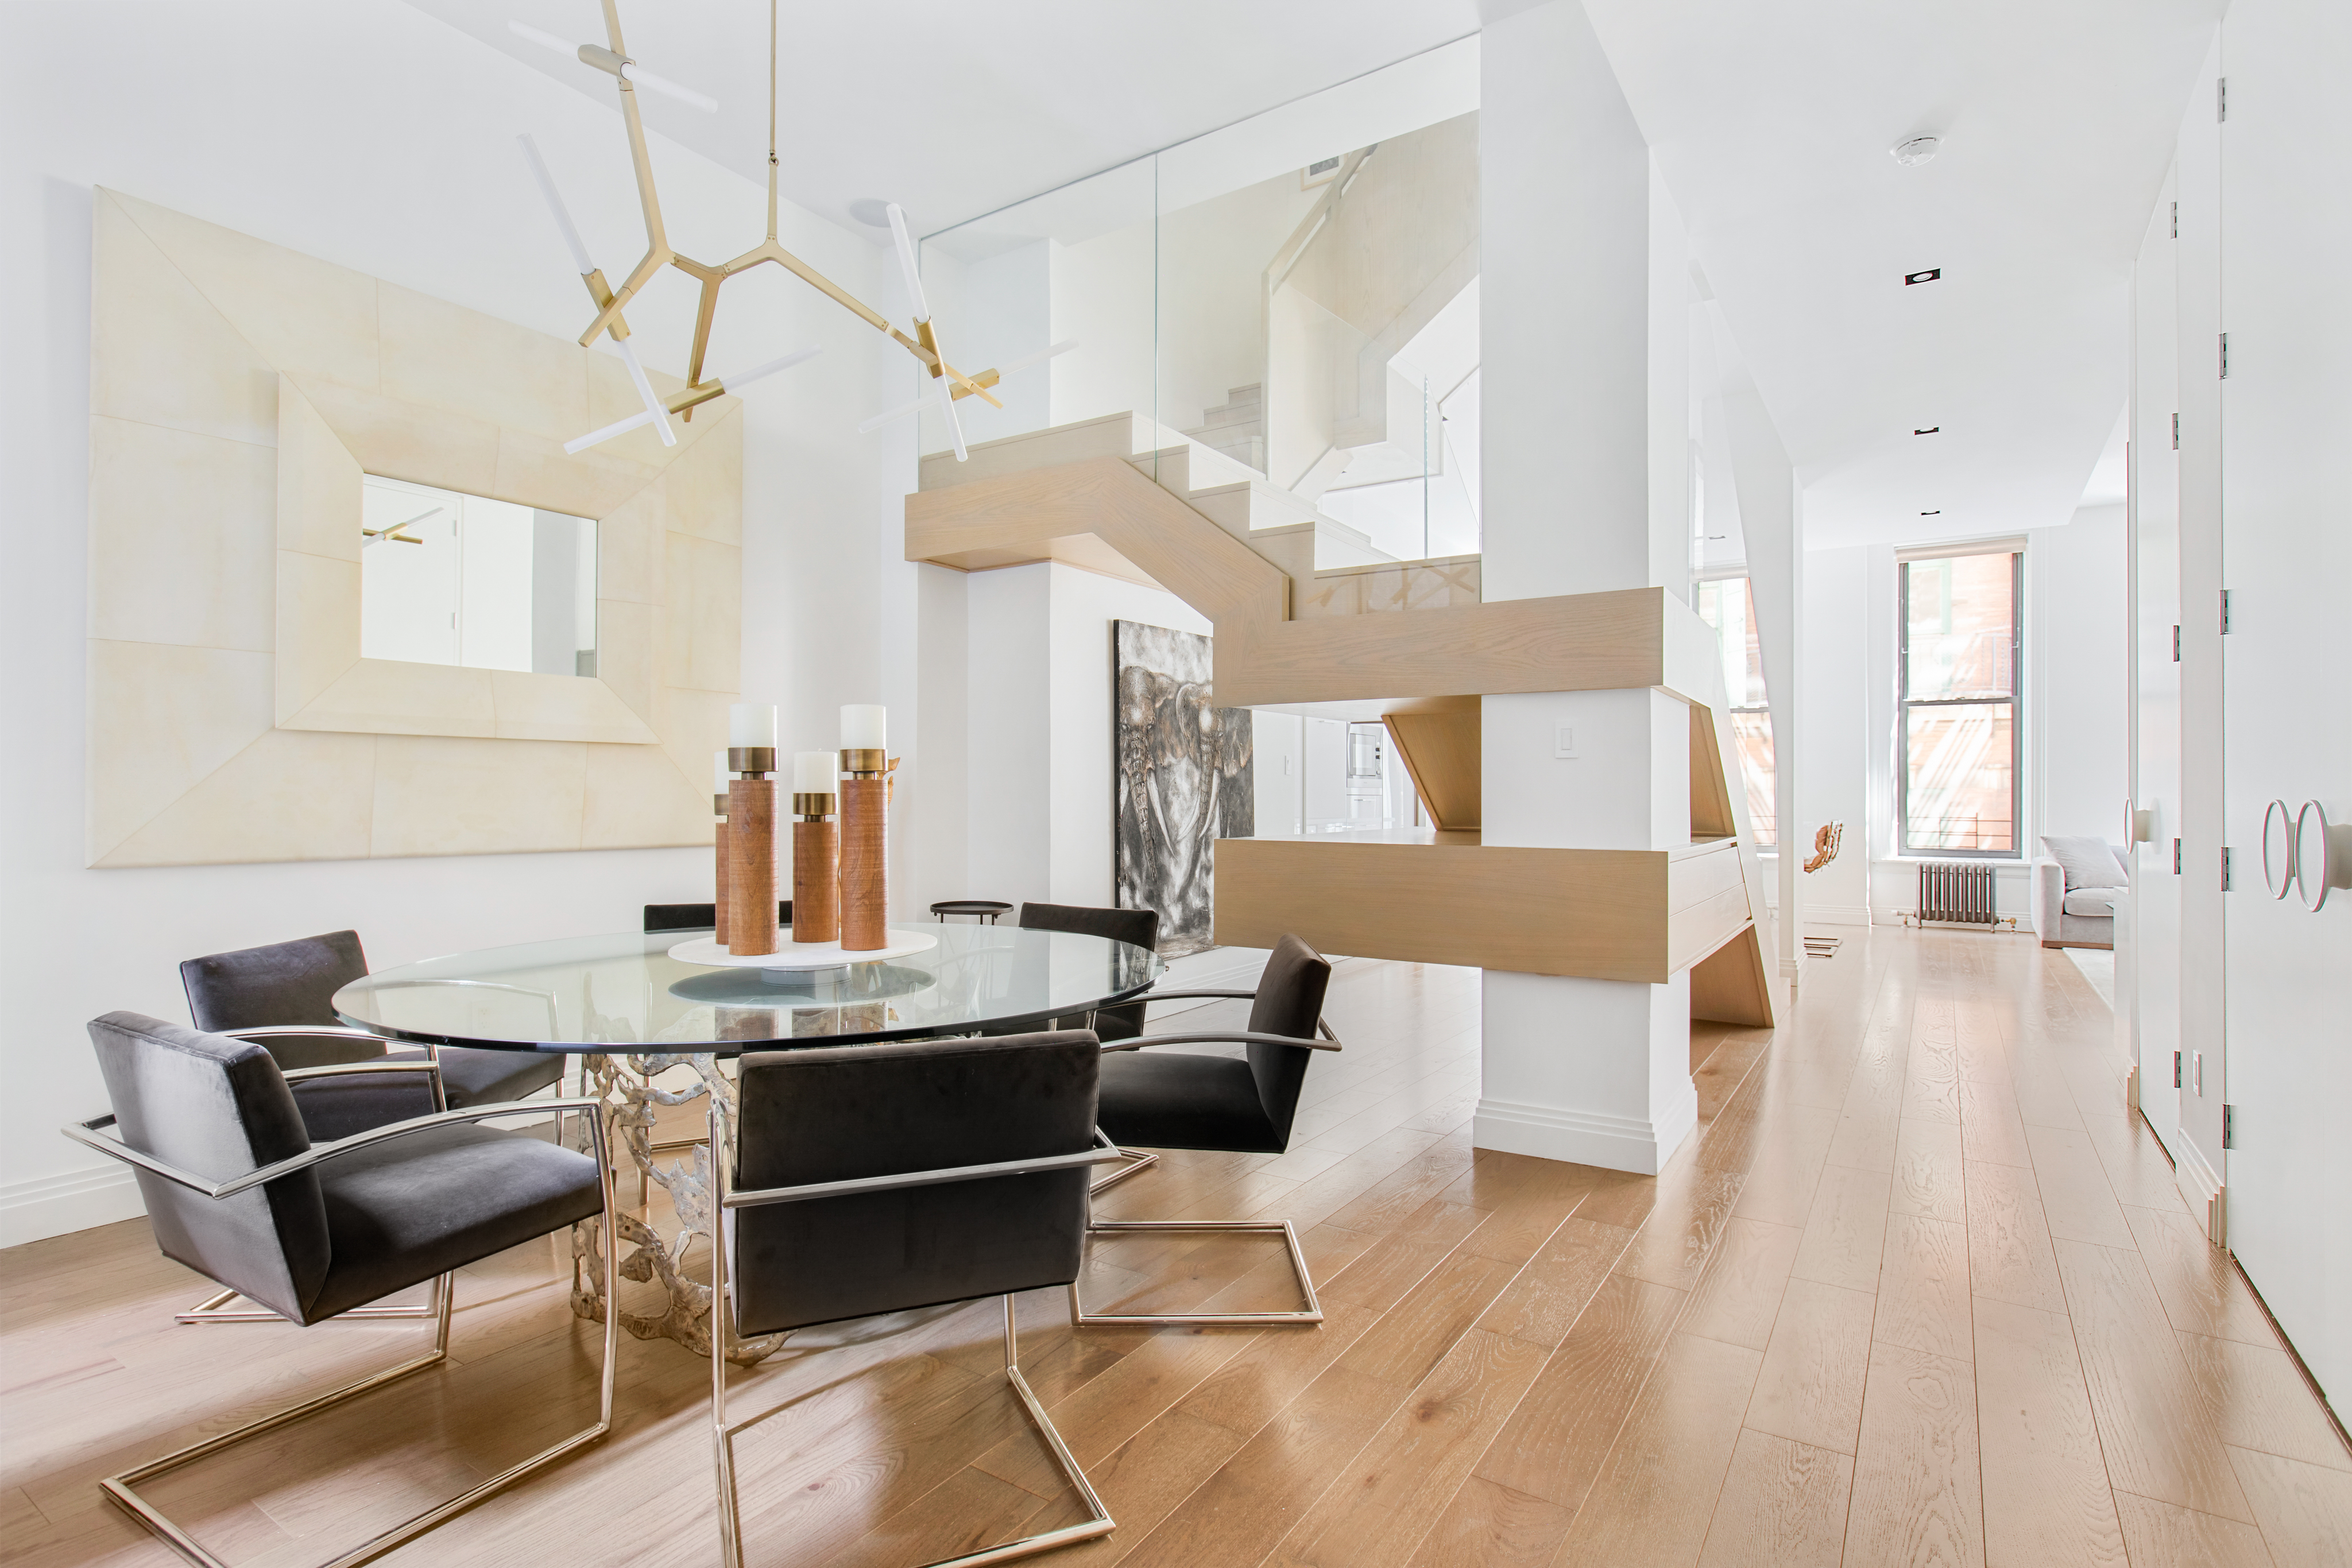 primary photo for 366 Broadway 2-D, New York, NY 10013, US